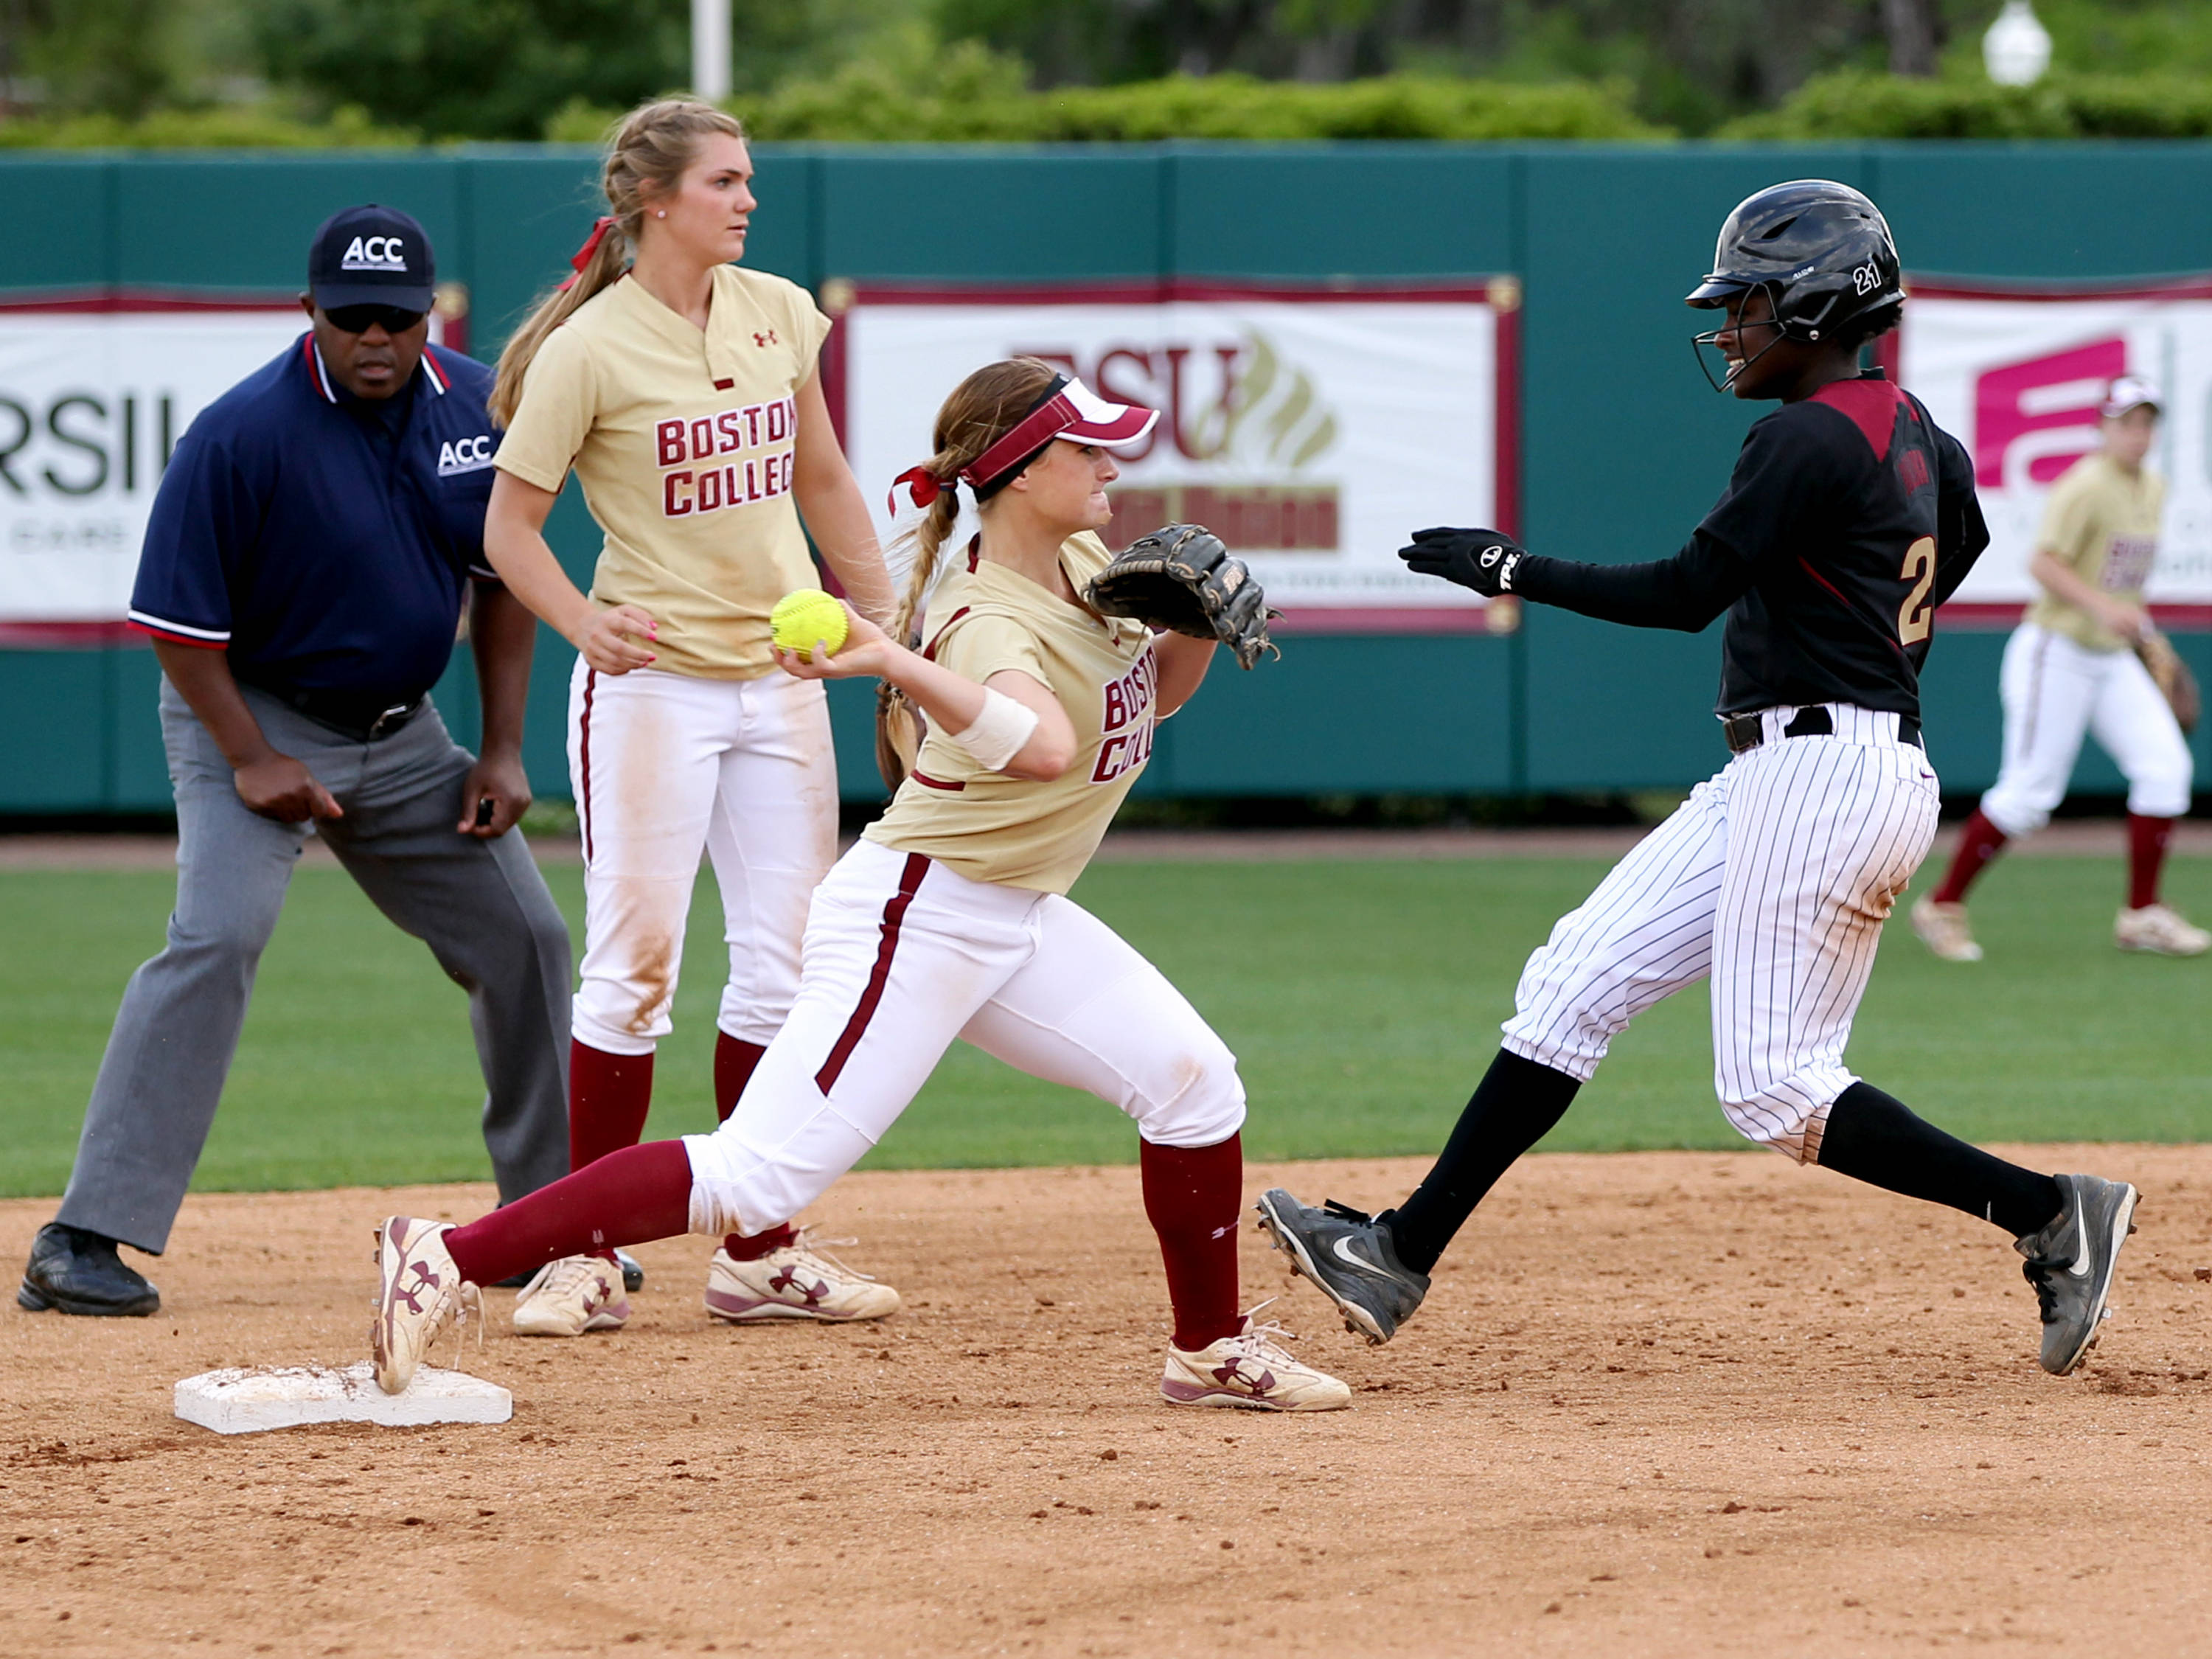 Morgan Bullock (21), FSU vs BC, 04/07/13 . (Photo by Steve Musco)